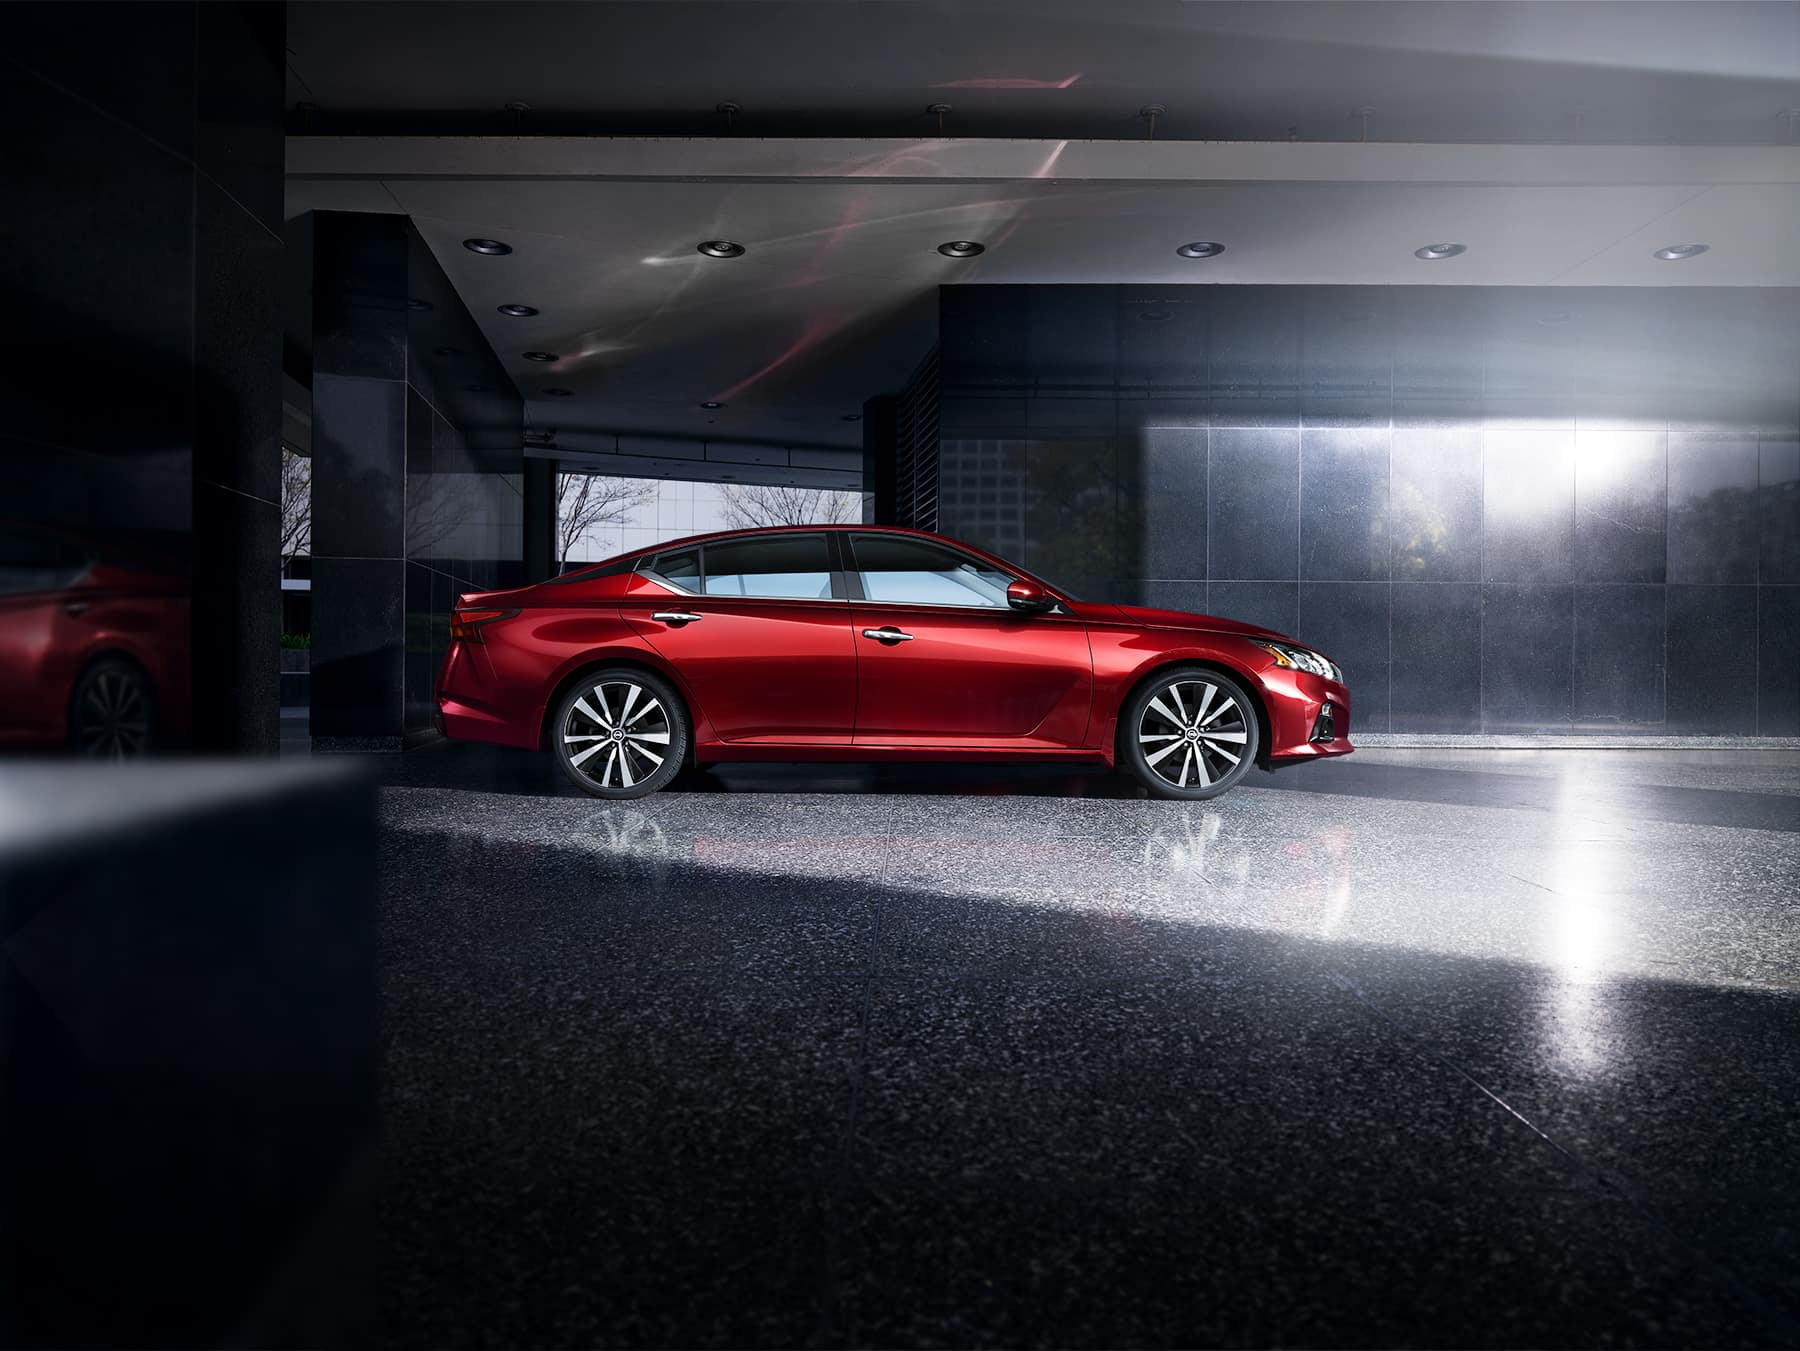 Model Features of the 2020 Nissan Altima at Boch Nissan of Norwood | red nissan altima park inside a building